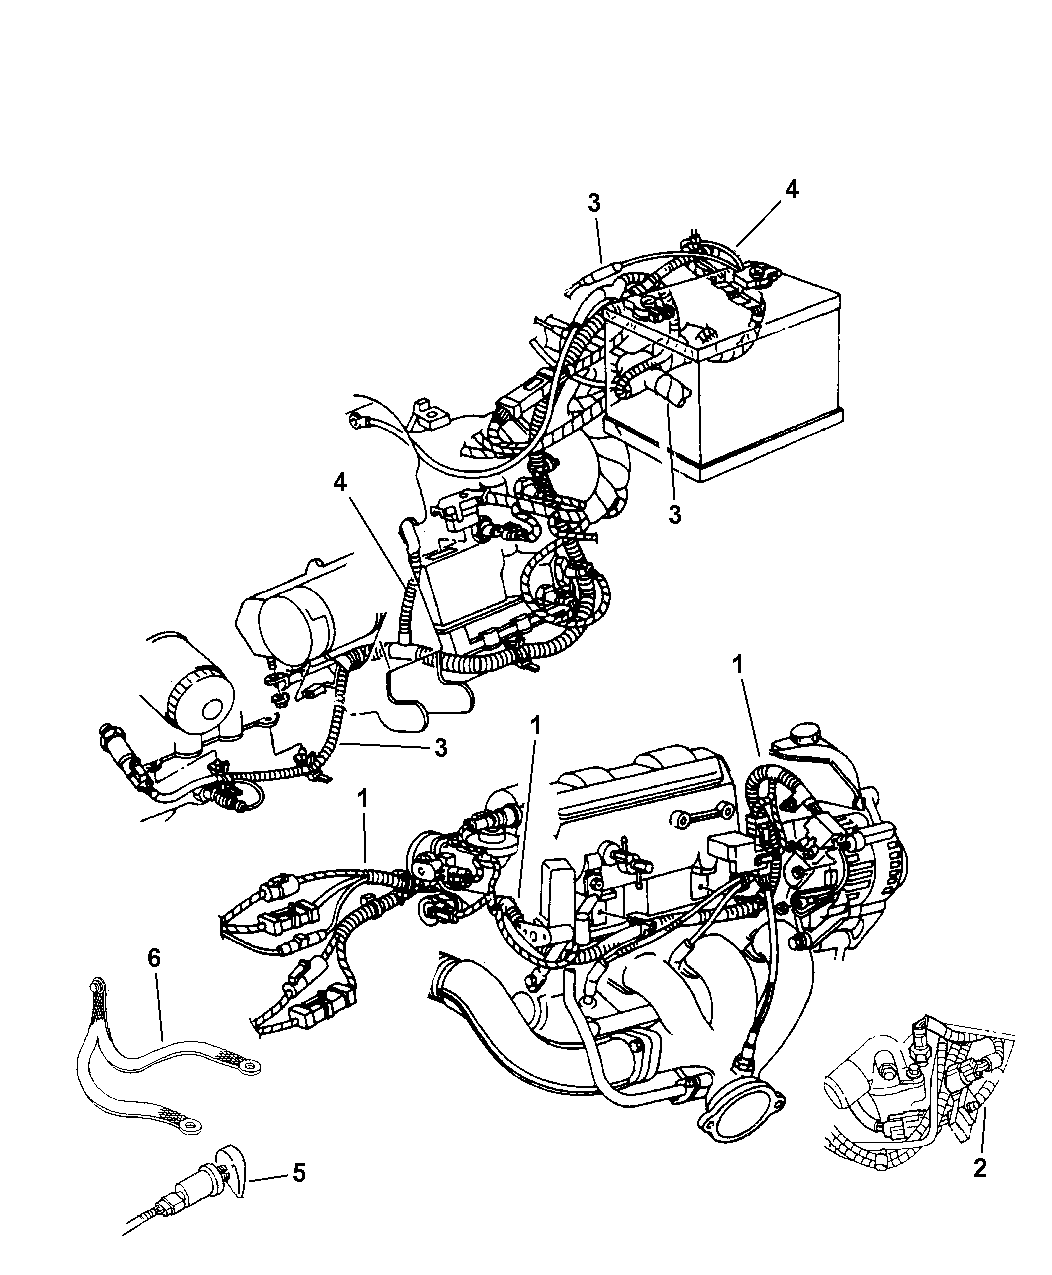 2001 Chrysler 300m Wiring Engine Related Parts Diagram